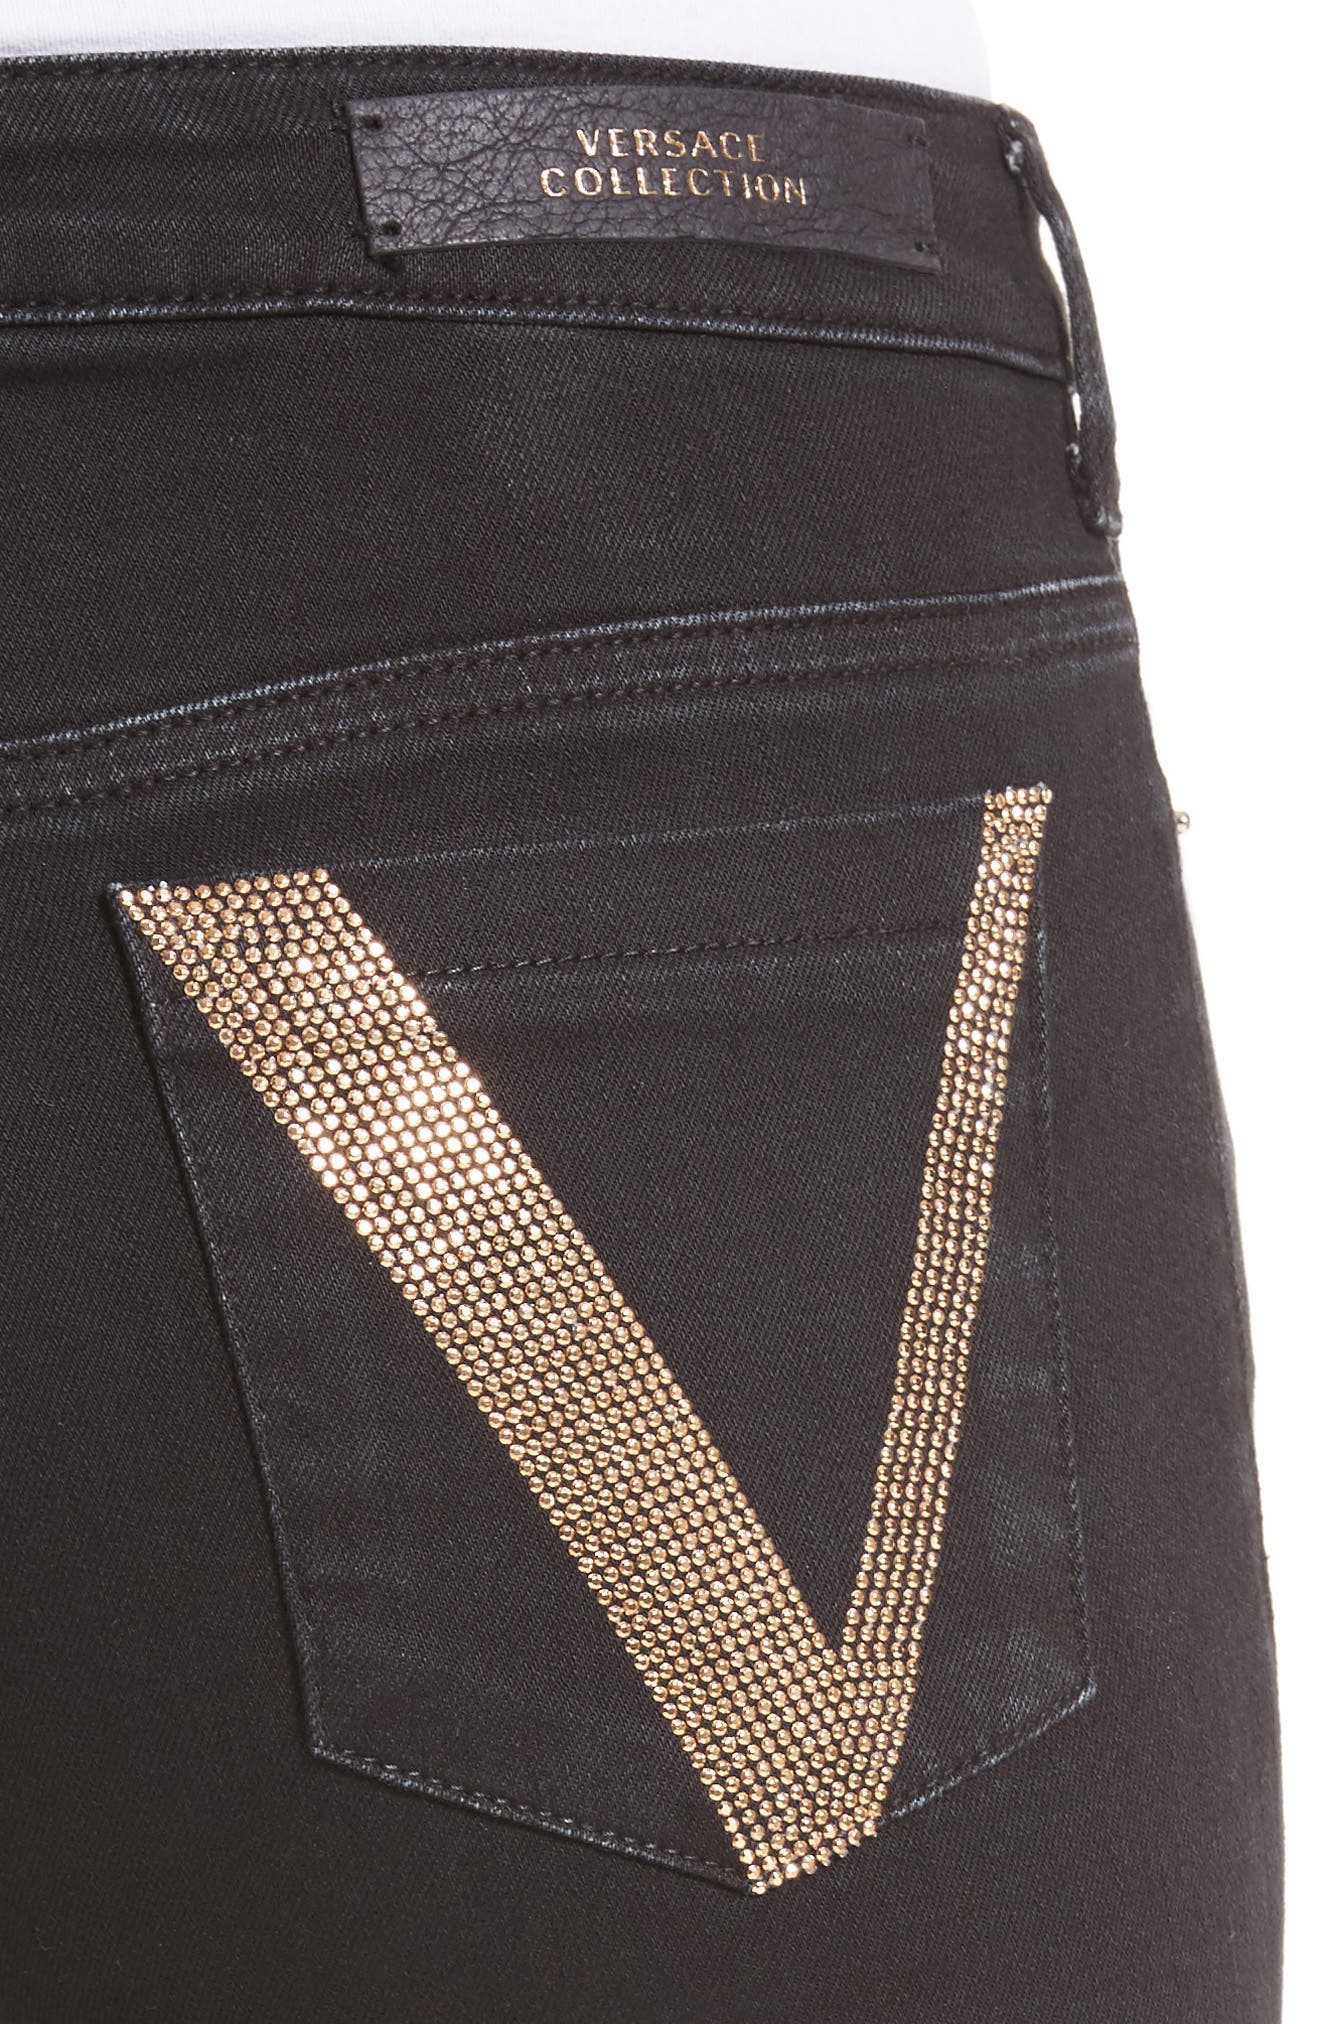 Alternate Image 4  - Versace Collection Embellished Pocket Skinny Jeans